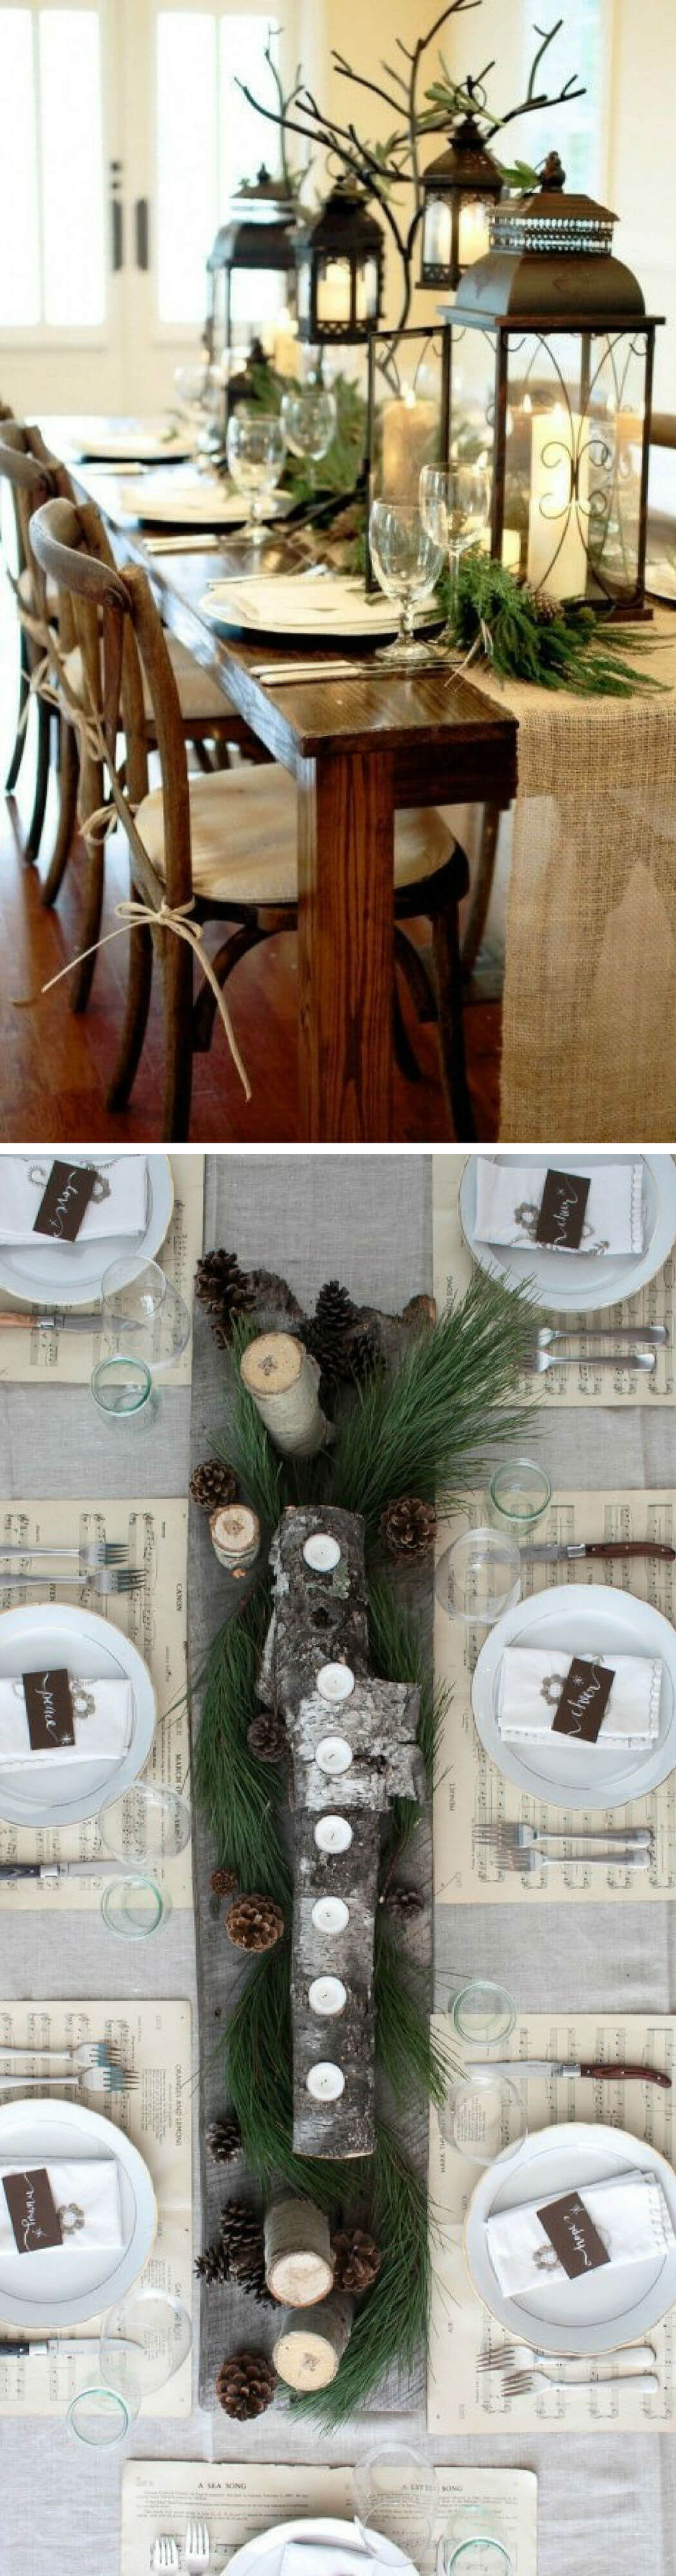 Winter decoration: Burlap, lanterns, & greenery | Best Elegant Christmas Centerpieces & Designs | Farmfoodfamily.com